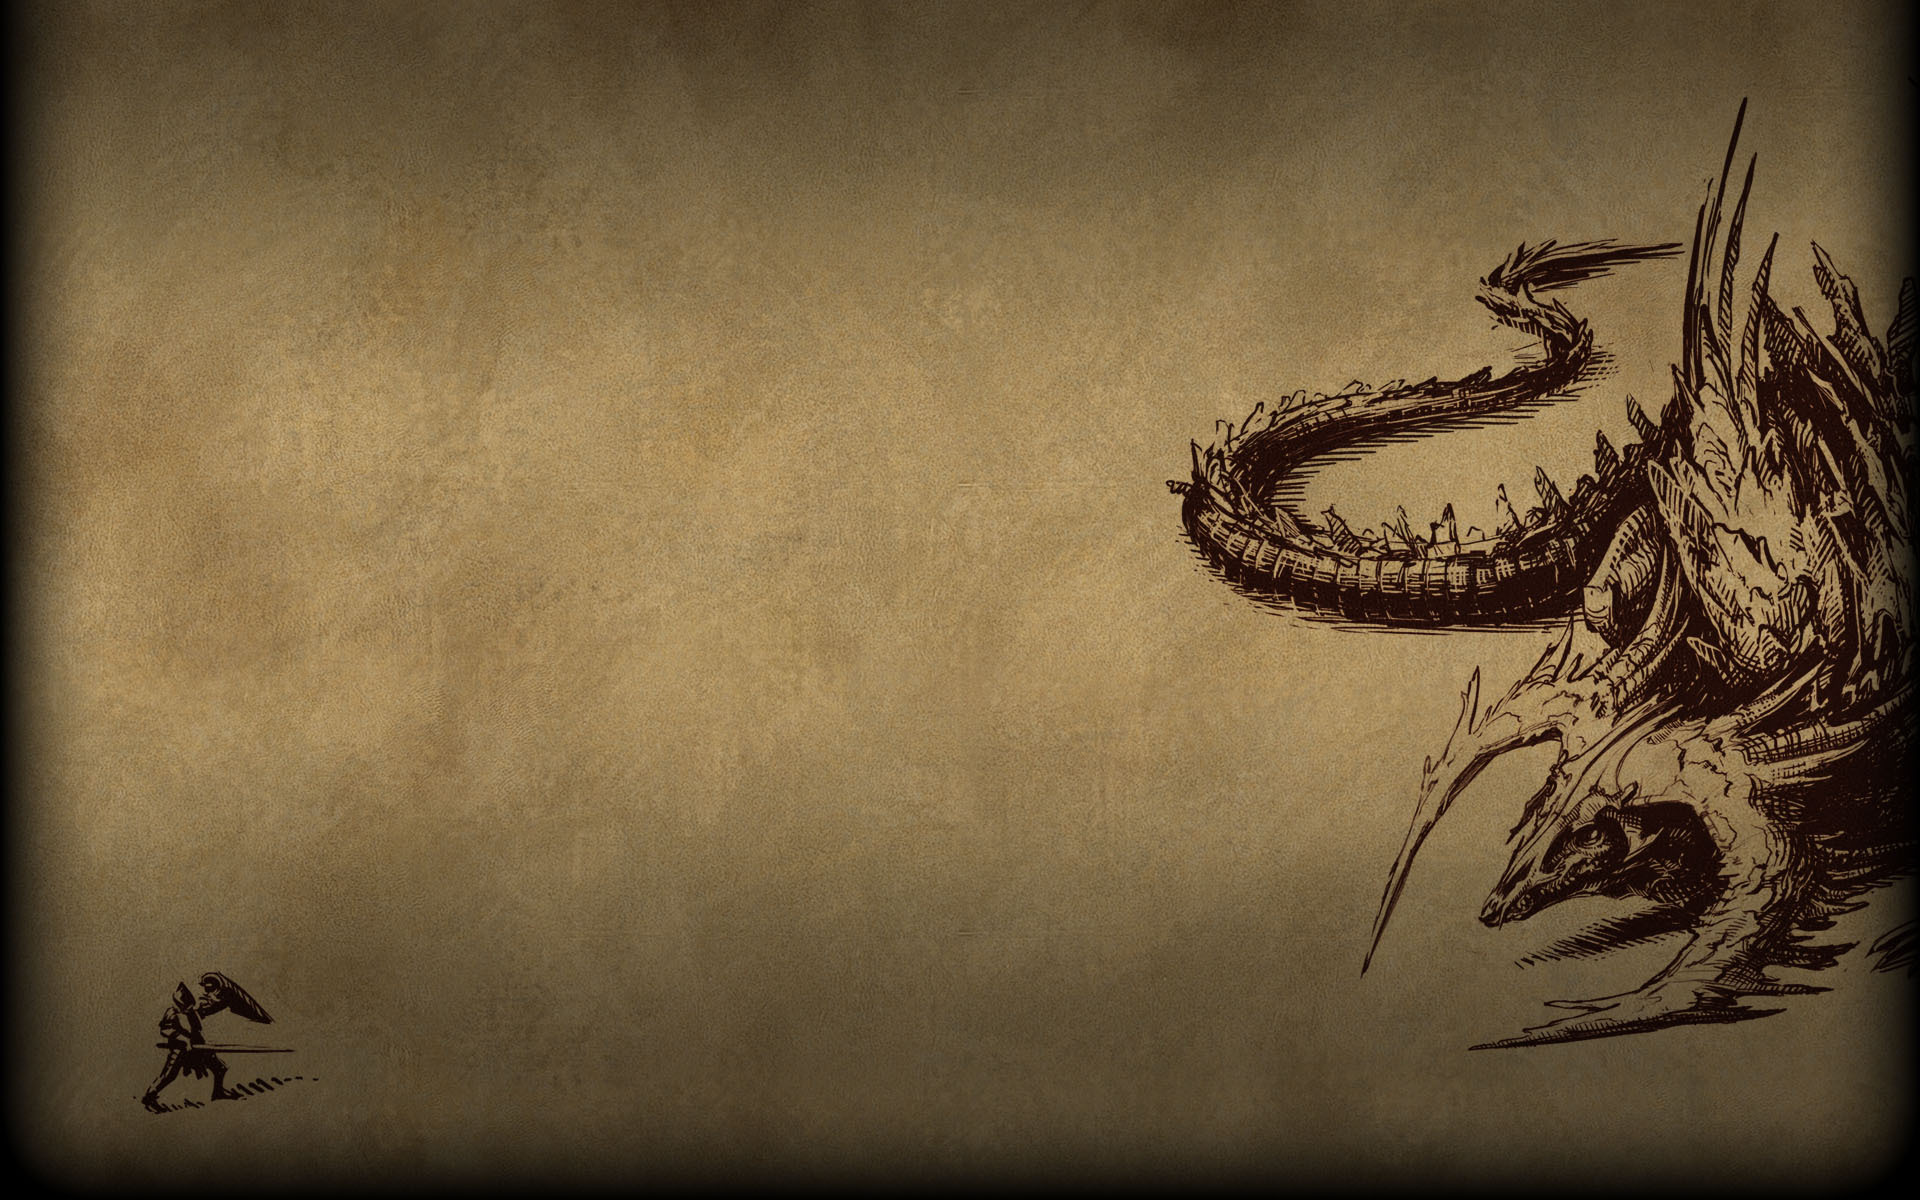 Pillars Of Eternity Background: Pillars Of Eternity Background Dragon Sketch.jpg